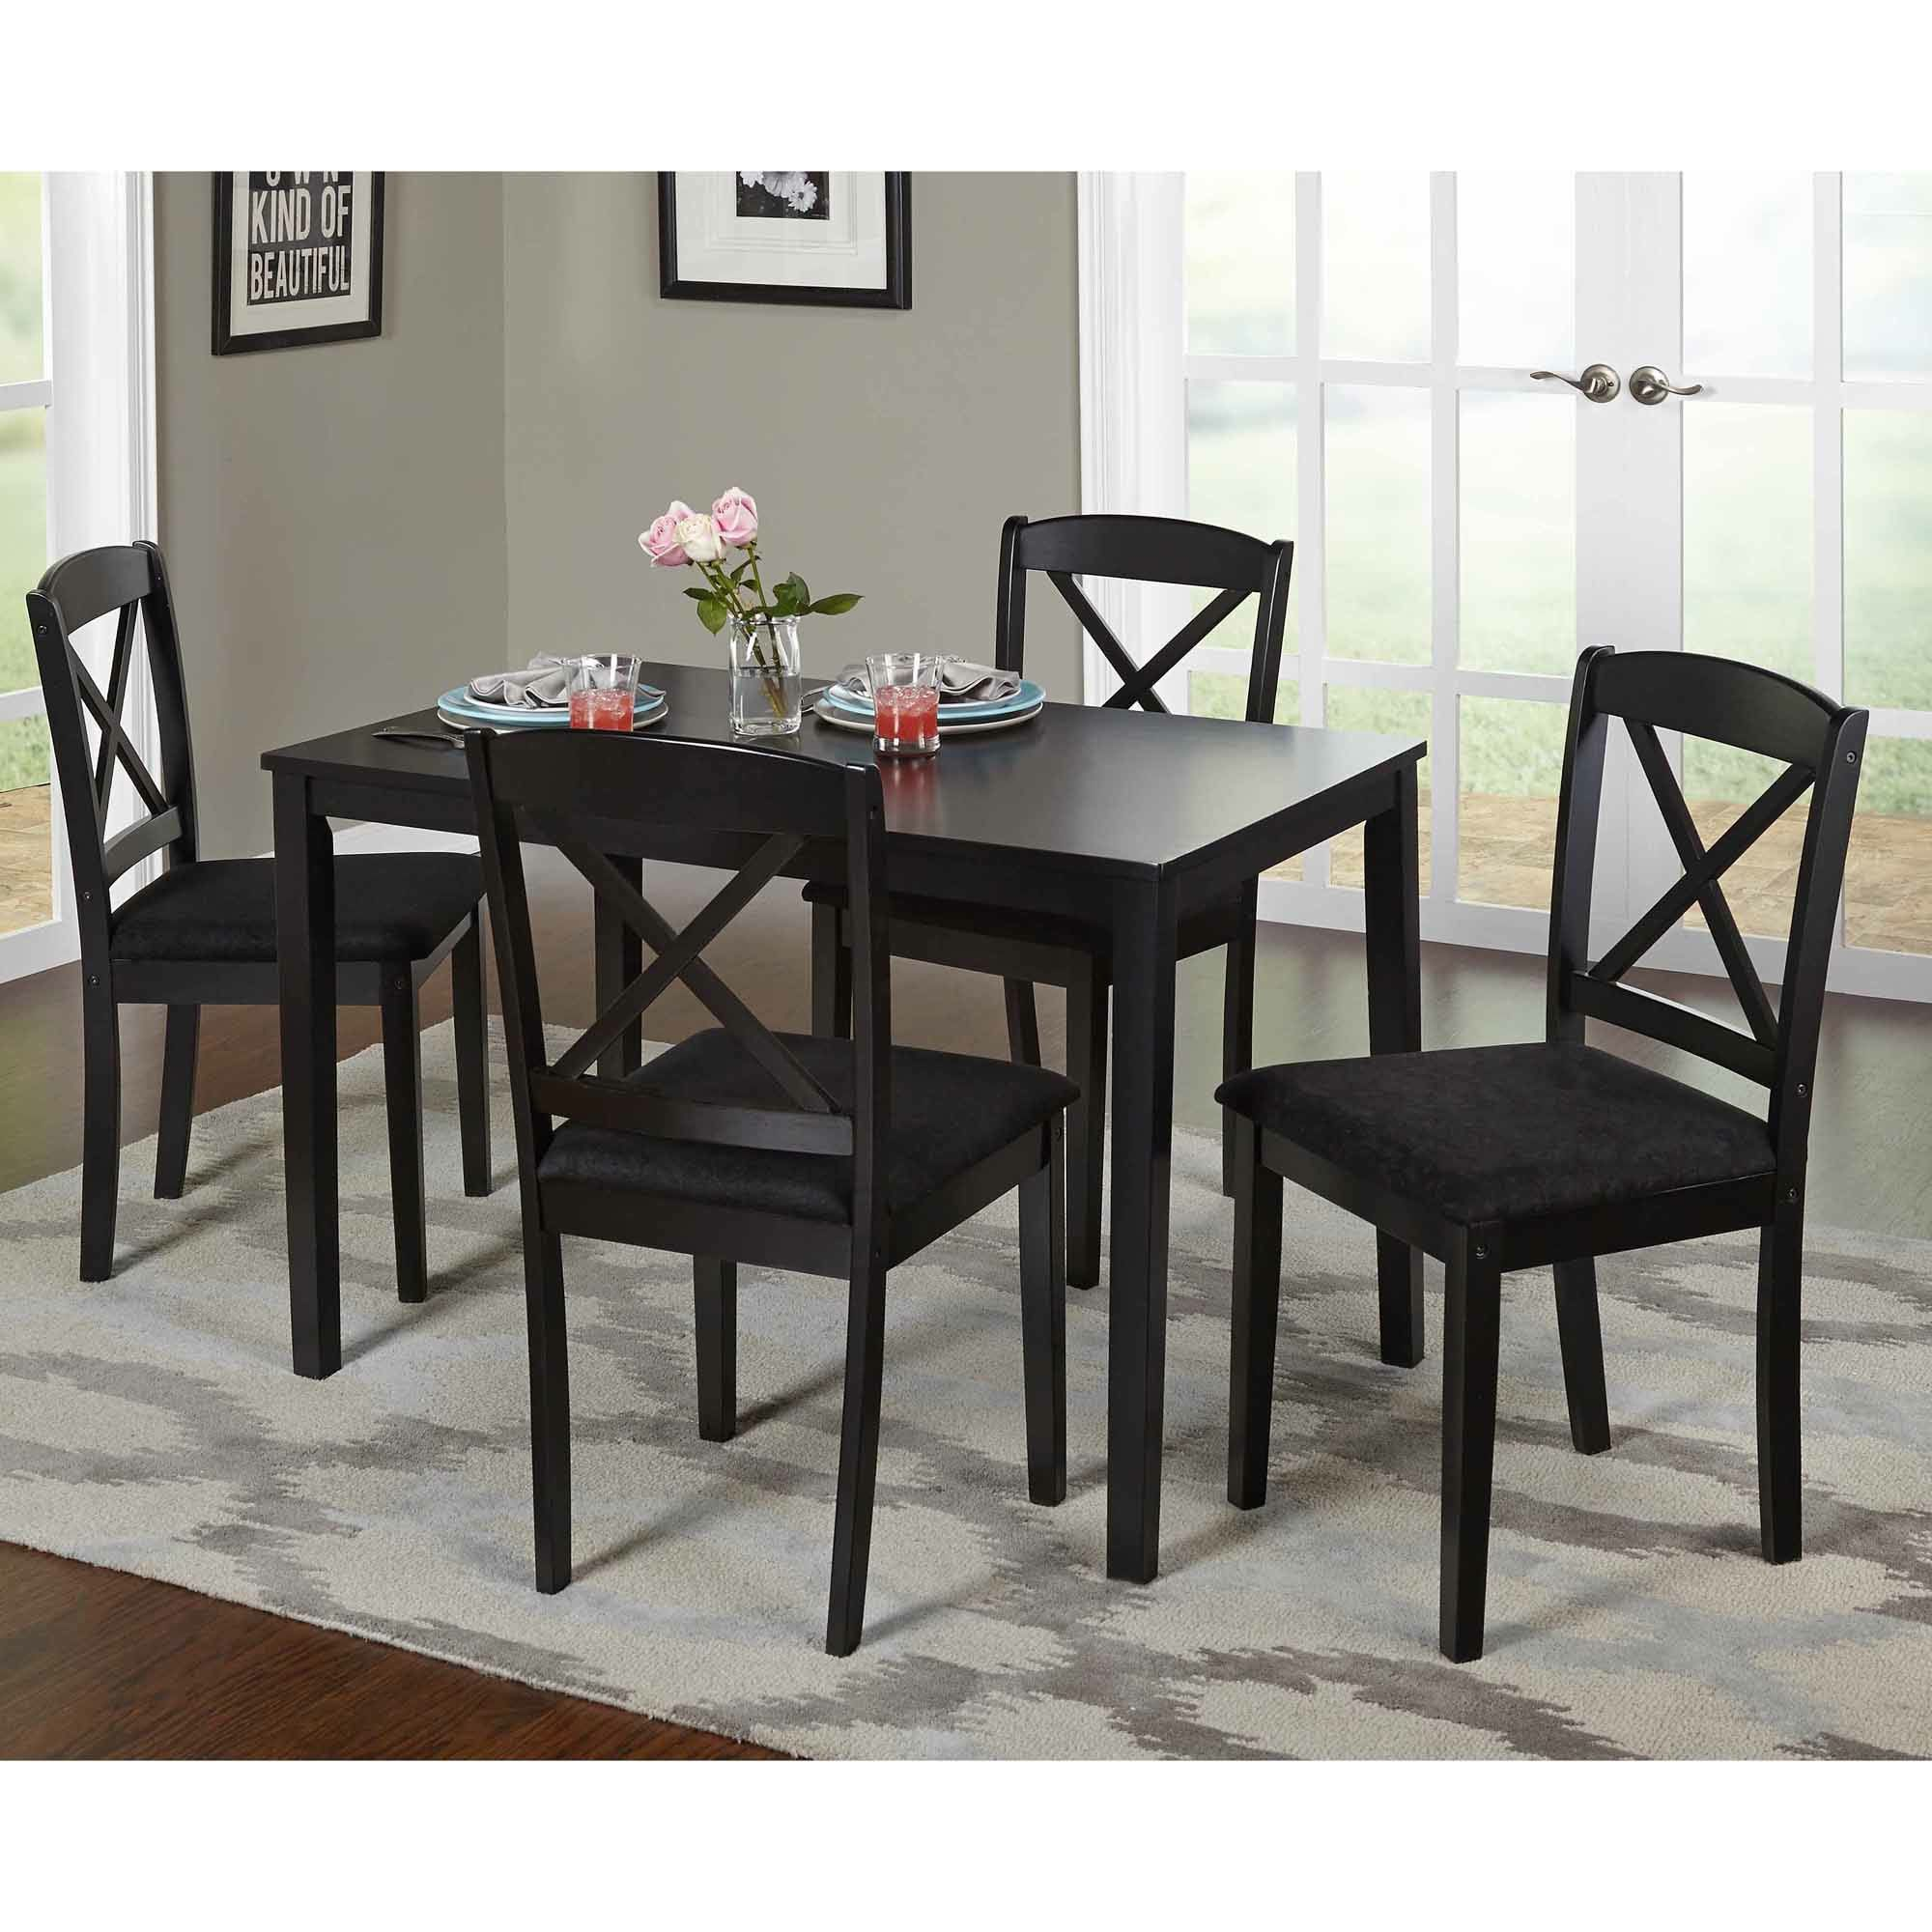 Tiny Dinette Sets Walmart Canada Kitchen Table And Chairs Table And Chairs Dining Table Black Dining Furniture Sets Dining Room Small